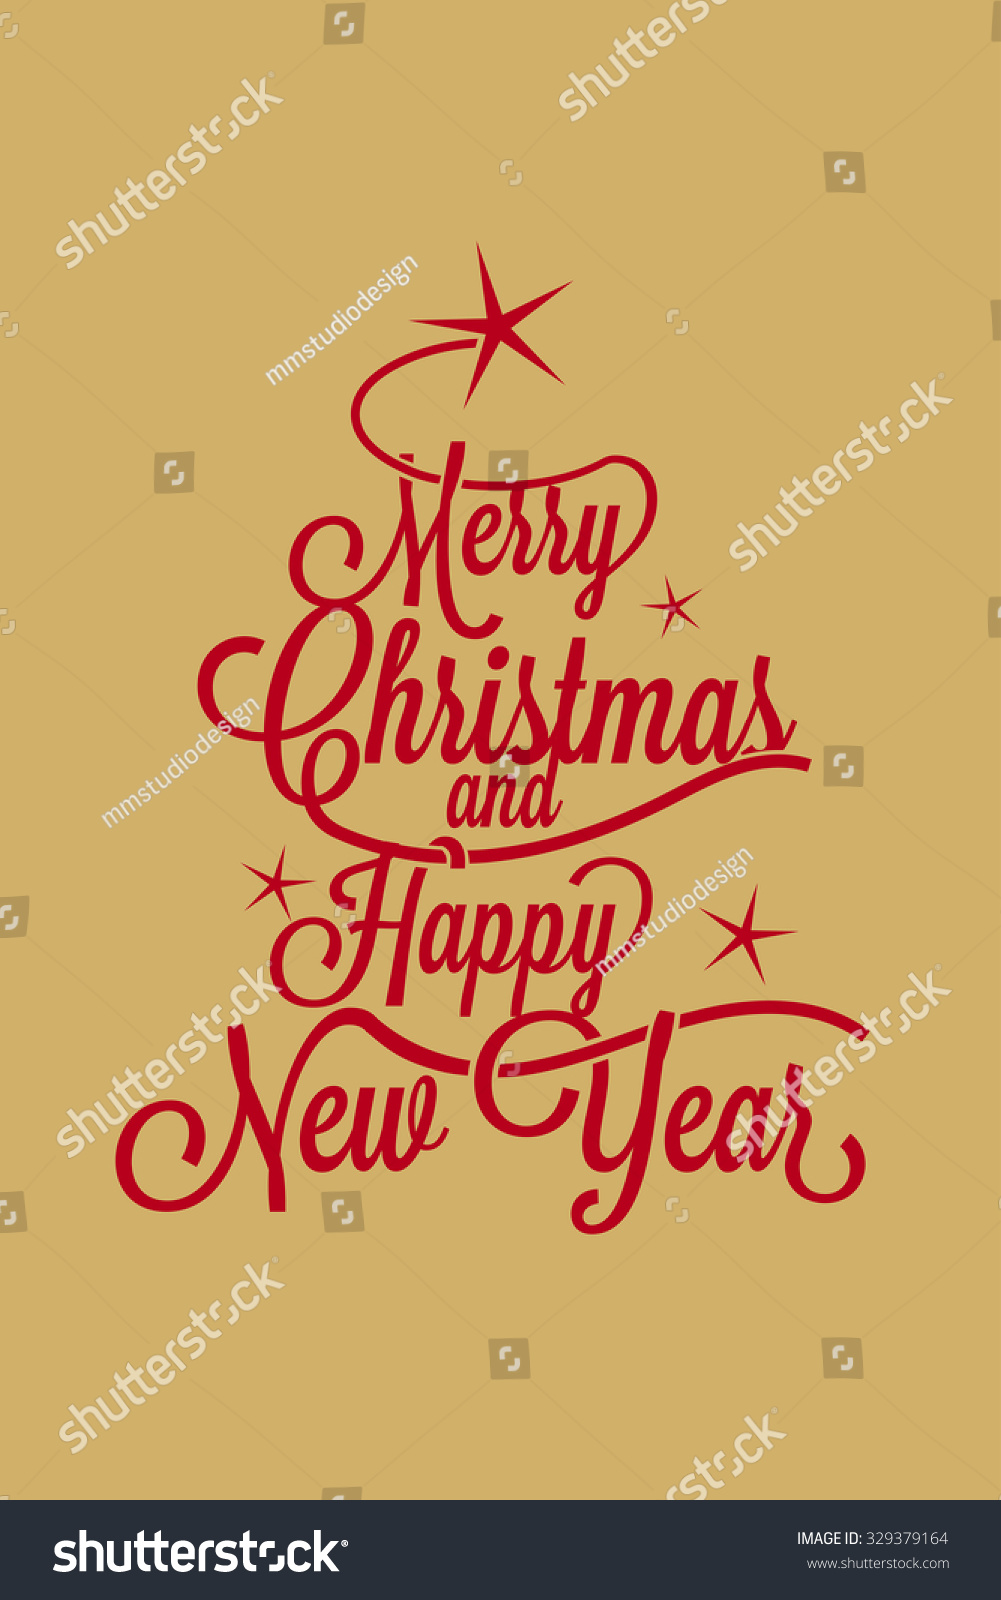 Merry christmas happy new year greetings stock vector royalty free merry christmas and happy new year greetings postcard with calligraphic text m4hsunfo